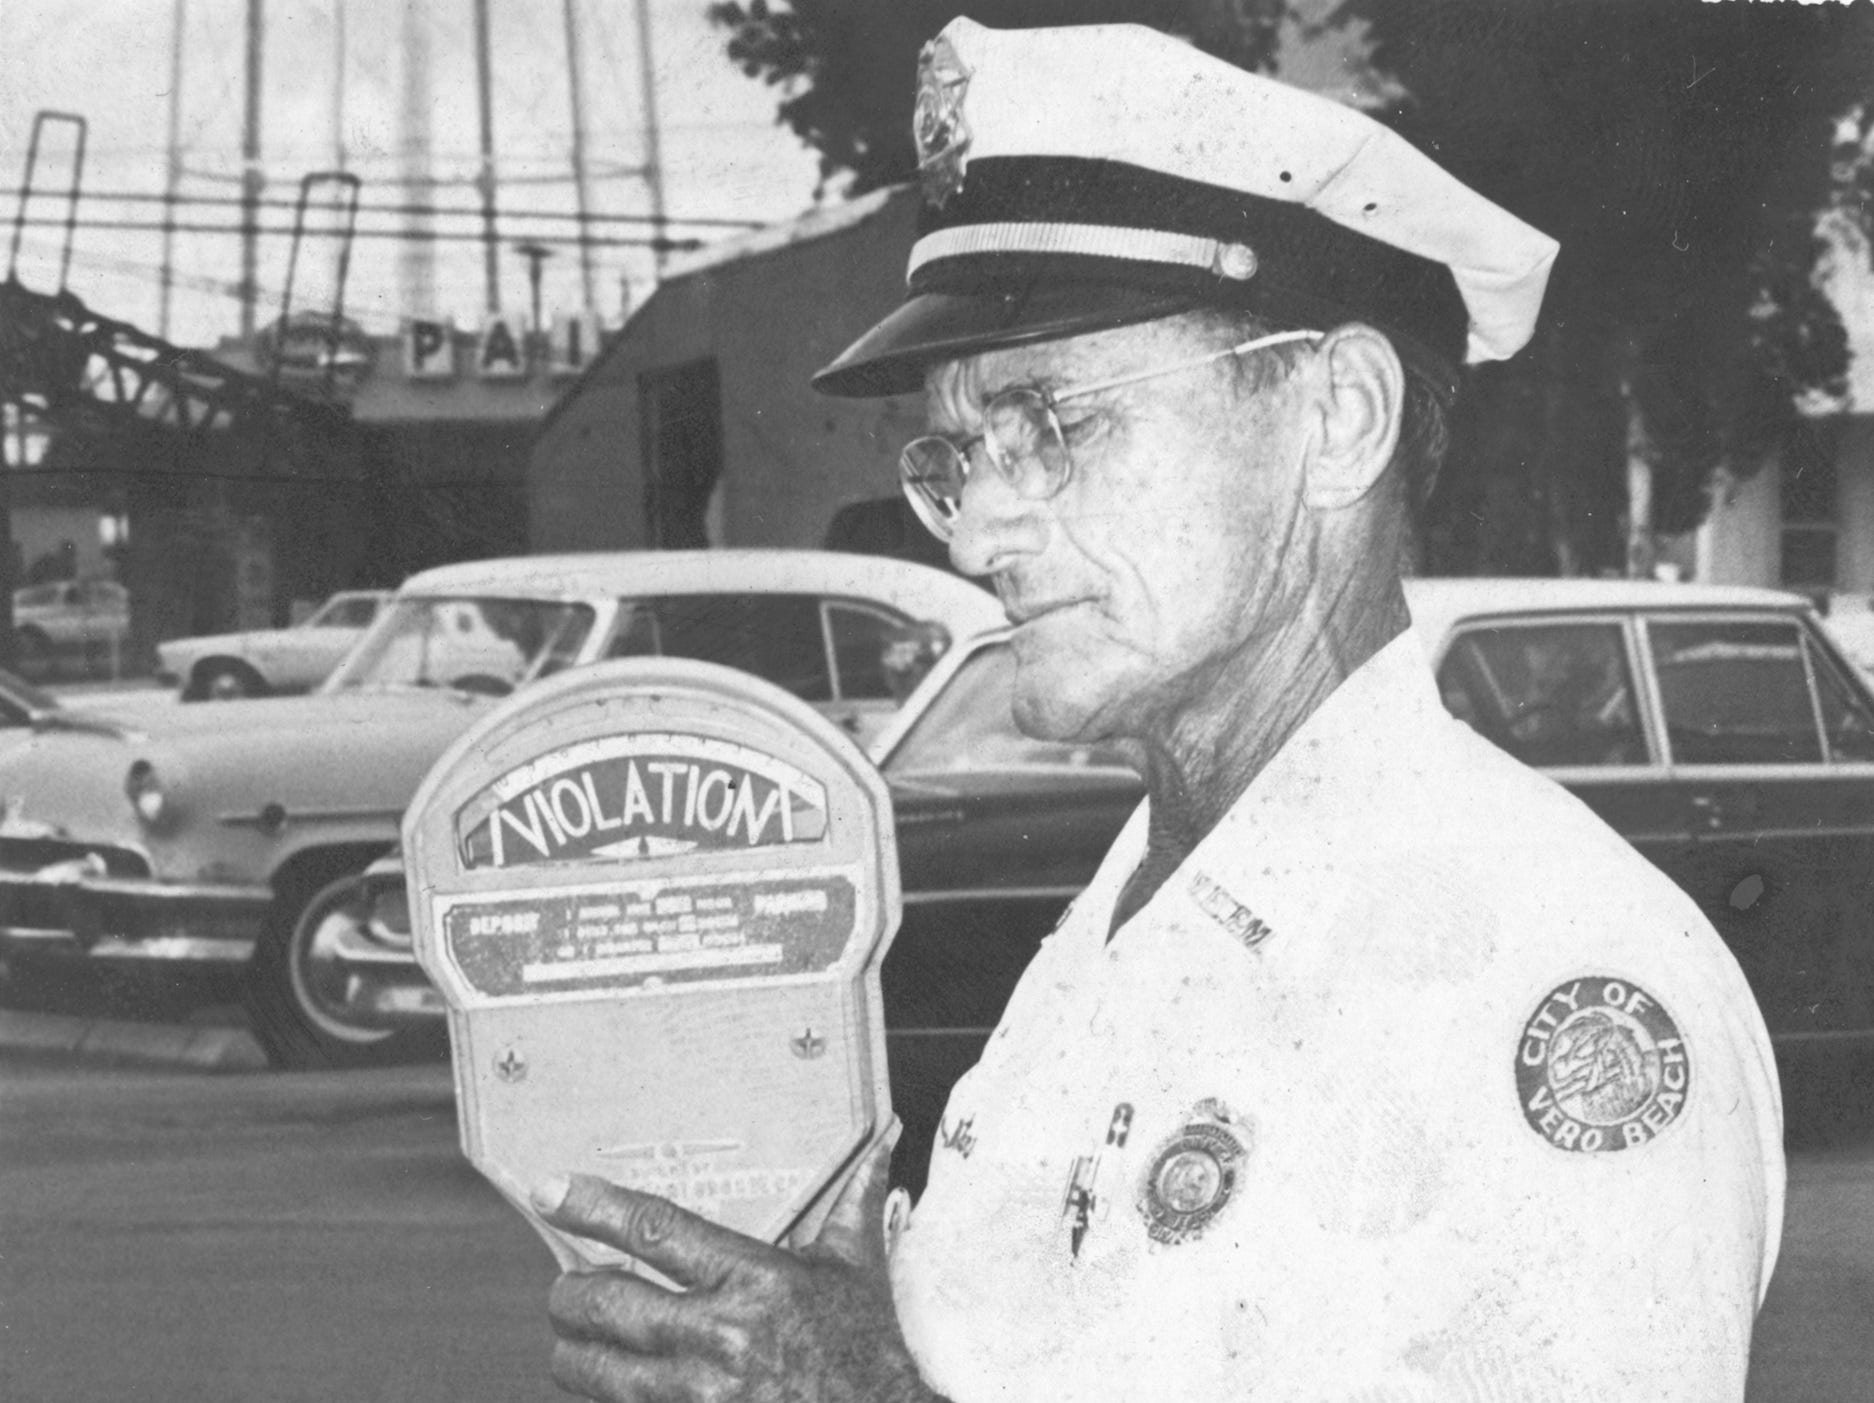 On June 6, 1963, the first parking meters were taken out of commission from the old Vero Beach City Hall parking lot under an agreement between the city and the Downtown Merchants Association. Paul Bishop, parking meter maintenance man, was shown with one of the meter heads he had just taken off.